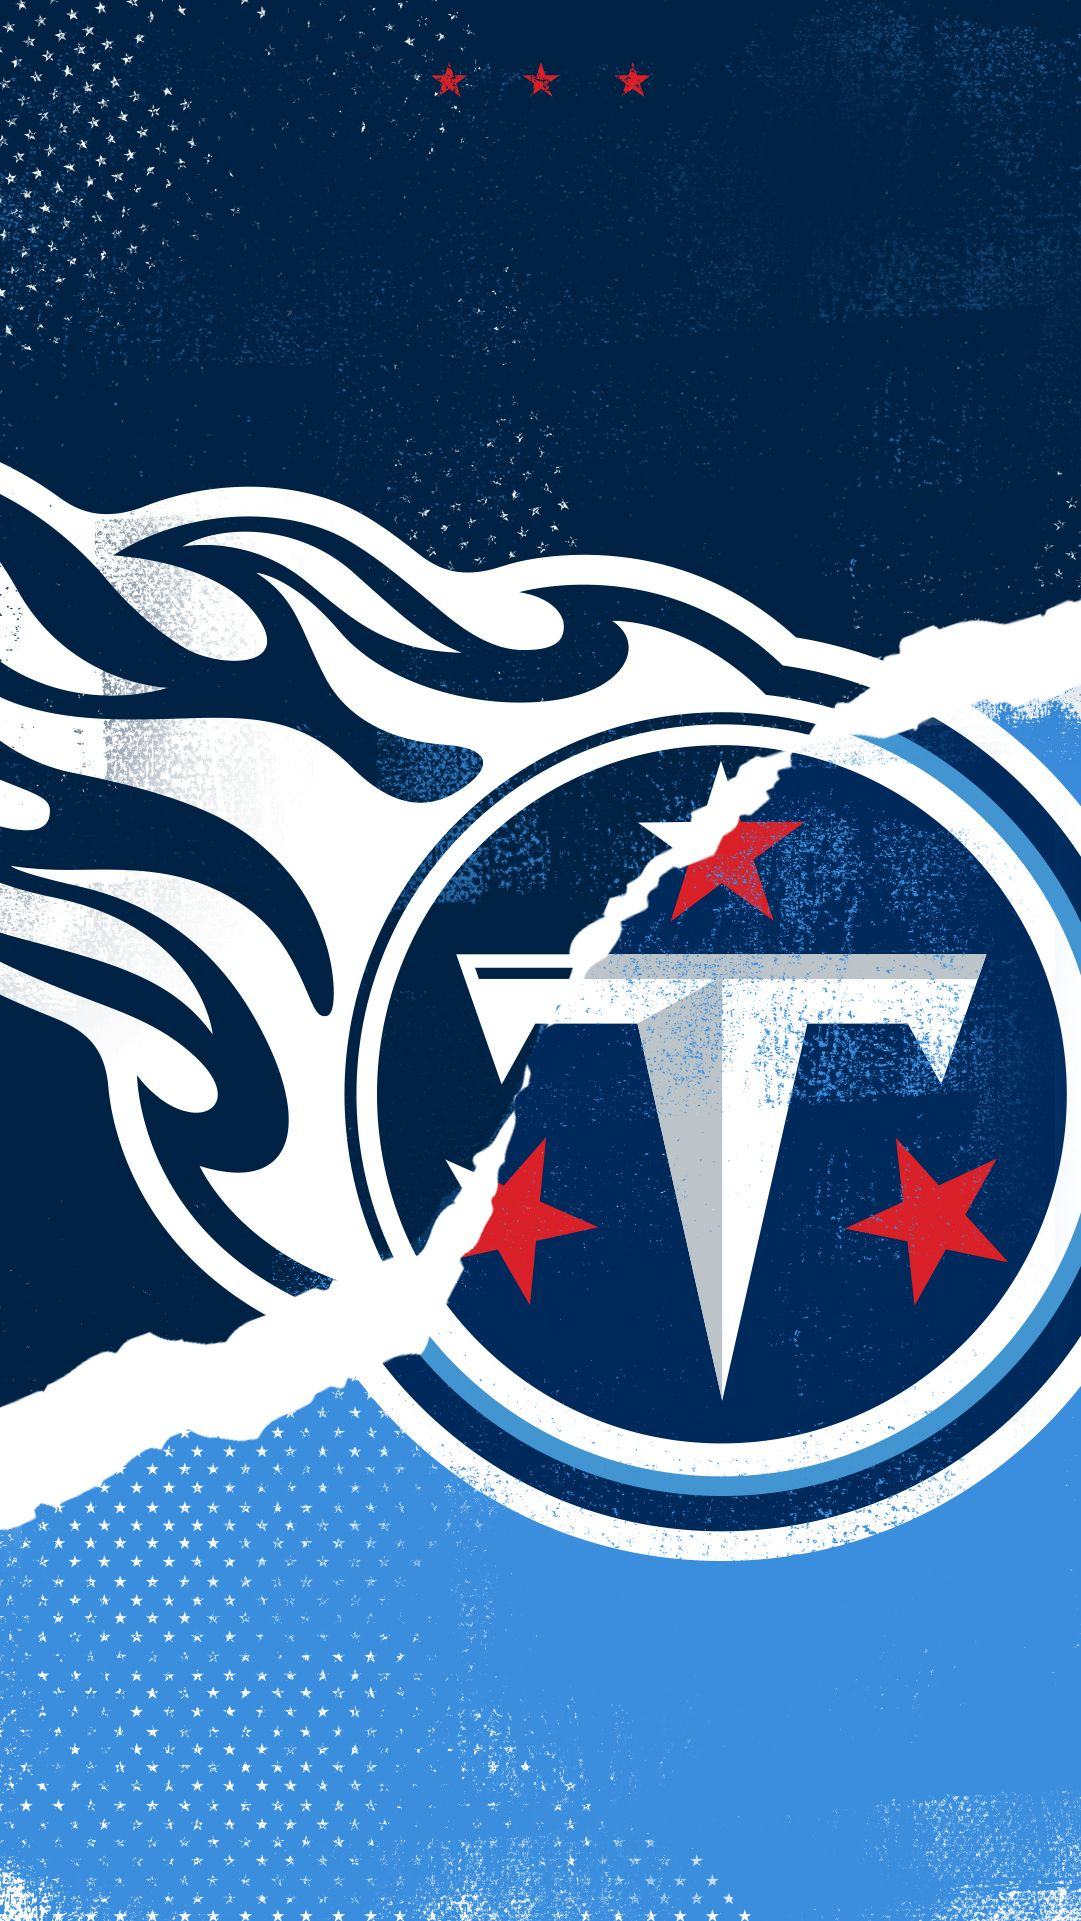 Tennessee Titans Wallpaper Wednesday Titans Football Tennessee Titans Football Tennessee Titans